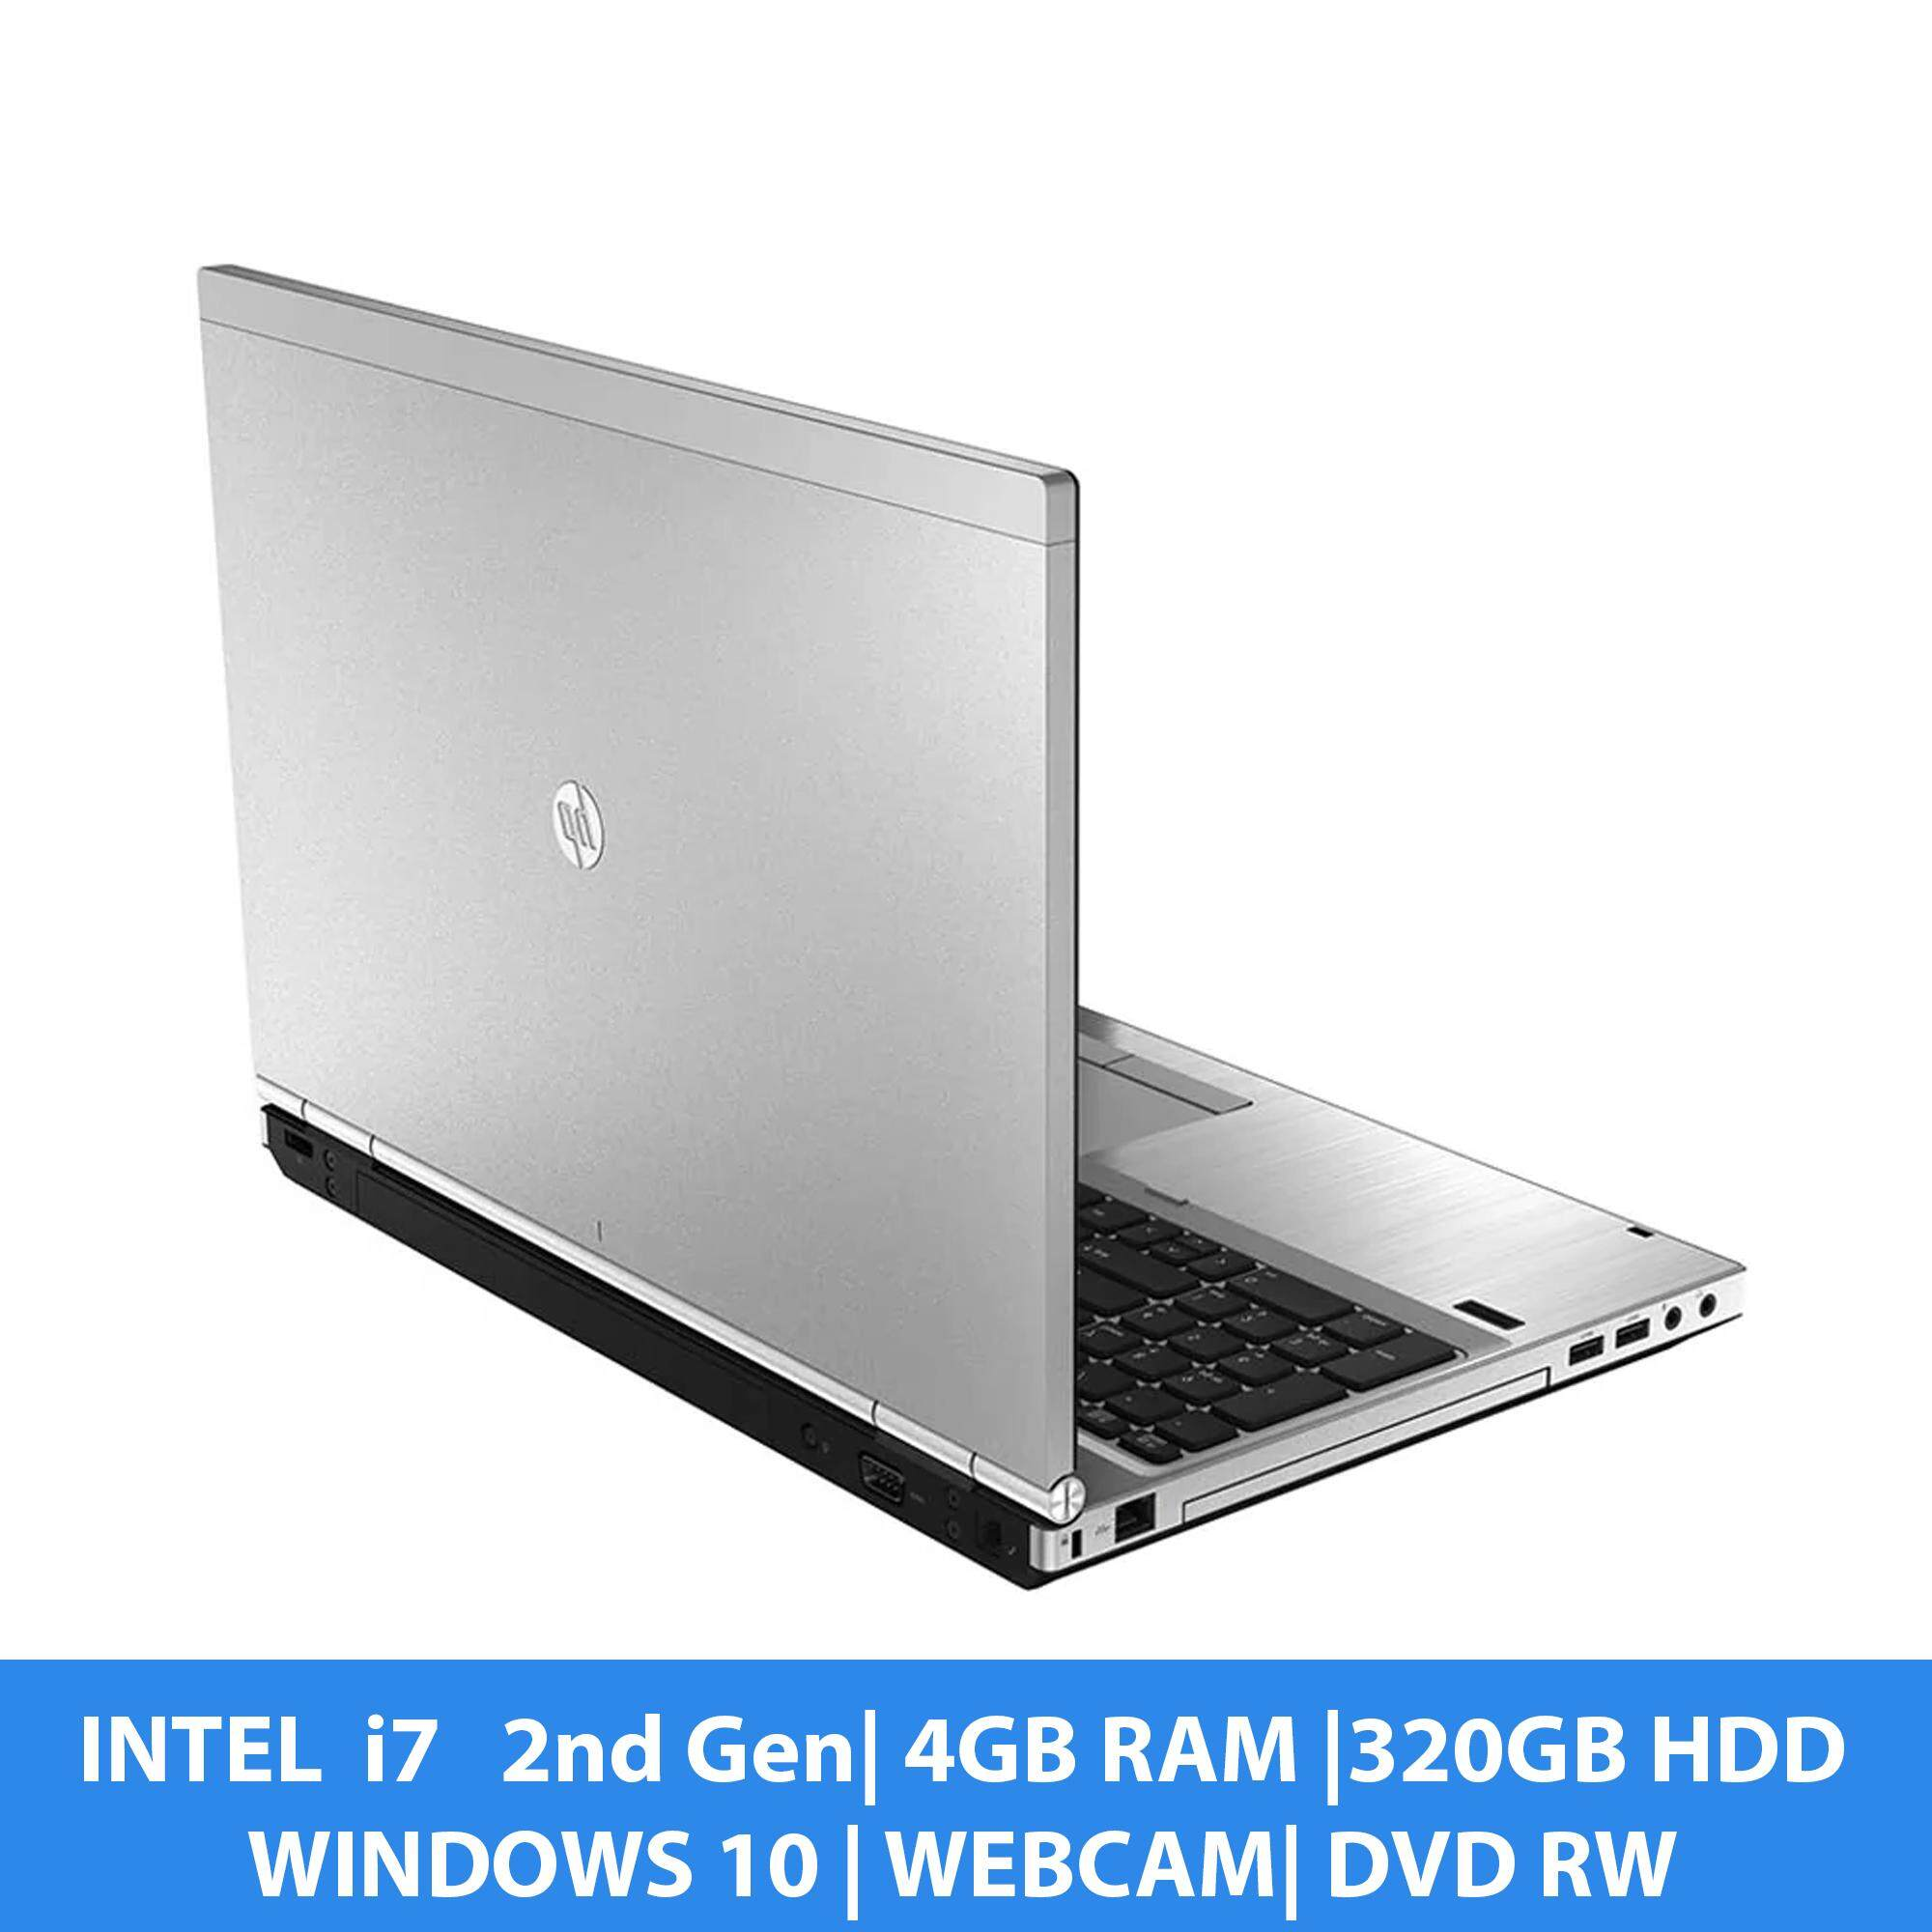 HP i5 Laptop 8460p - i7 2nd Gen, 4GB RAM, 320GB HDD, WebCam Wifi, Office Installed, Free items, 3 months Warranty 100% Original - refurbished Malaysia